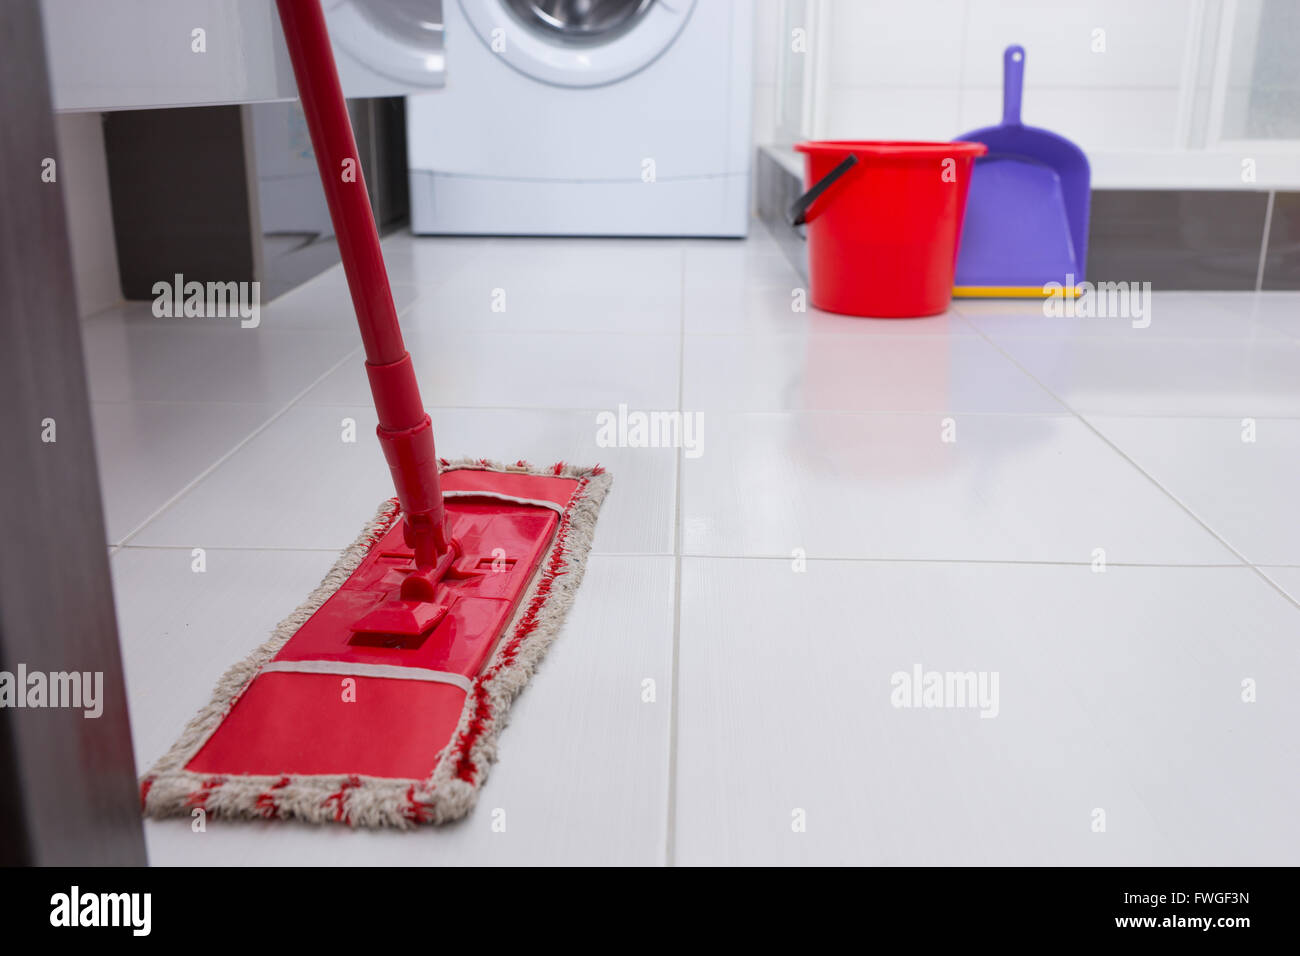 Colorful red mop on a white tiled floor in a bathroom or laundry colorful red mop on a white tiled floor in a bathroom or laundry with a washing machine visible behind low angle close up view dailygadgetfo Choice Image